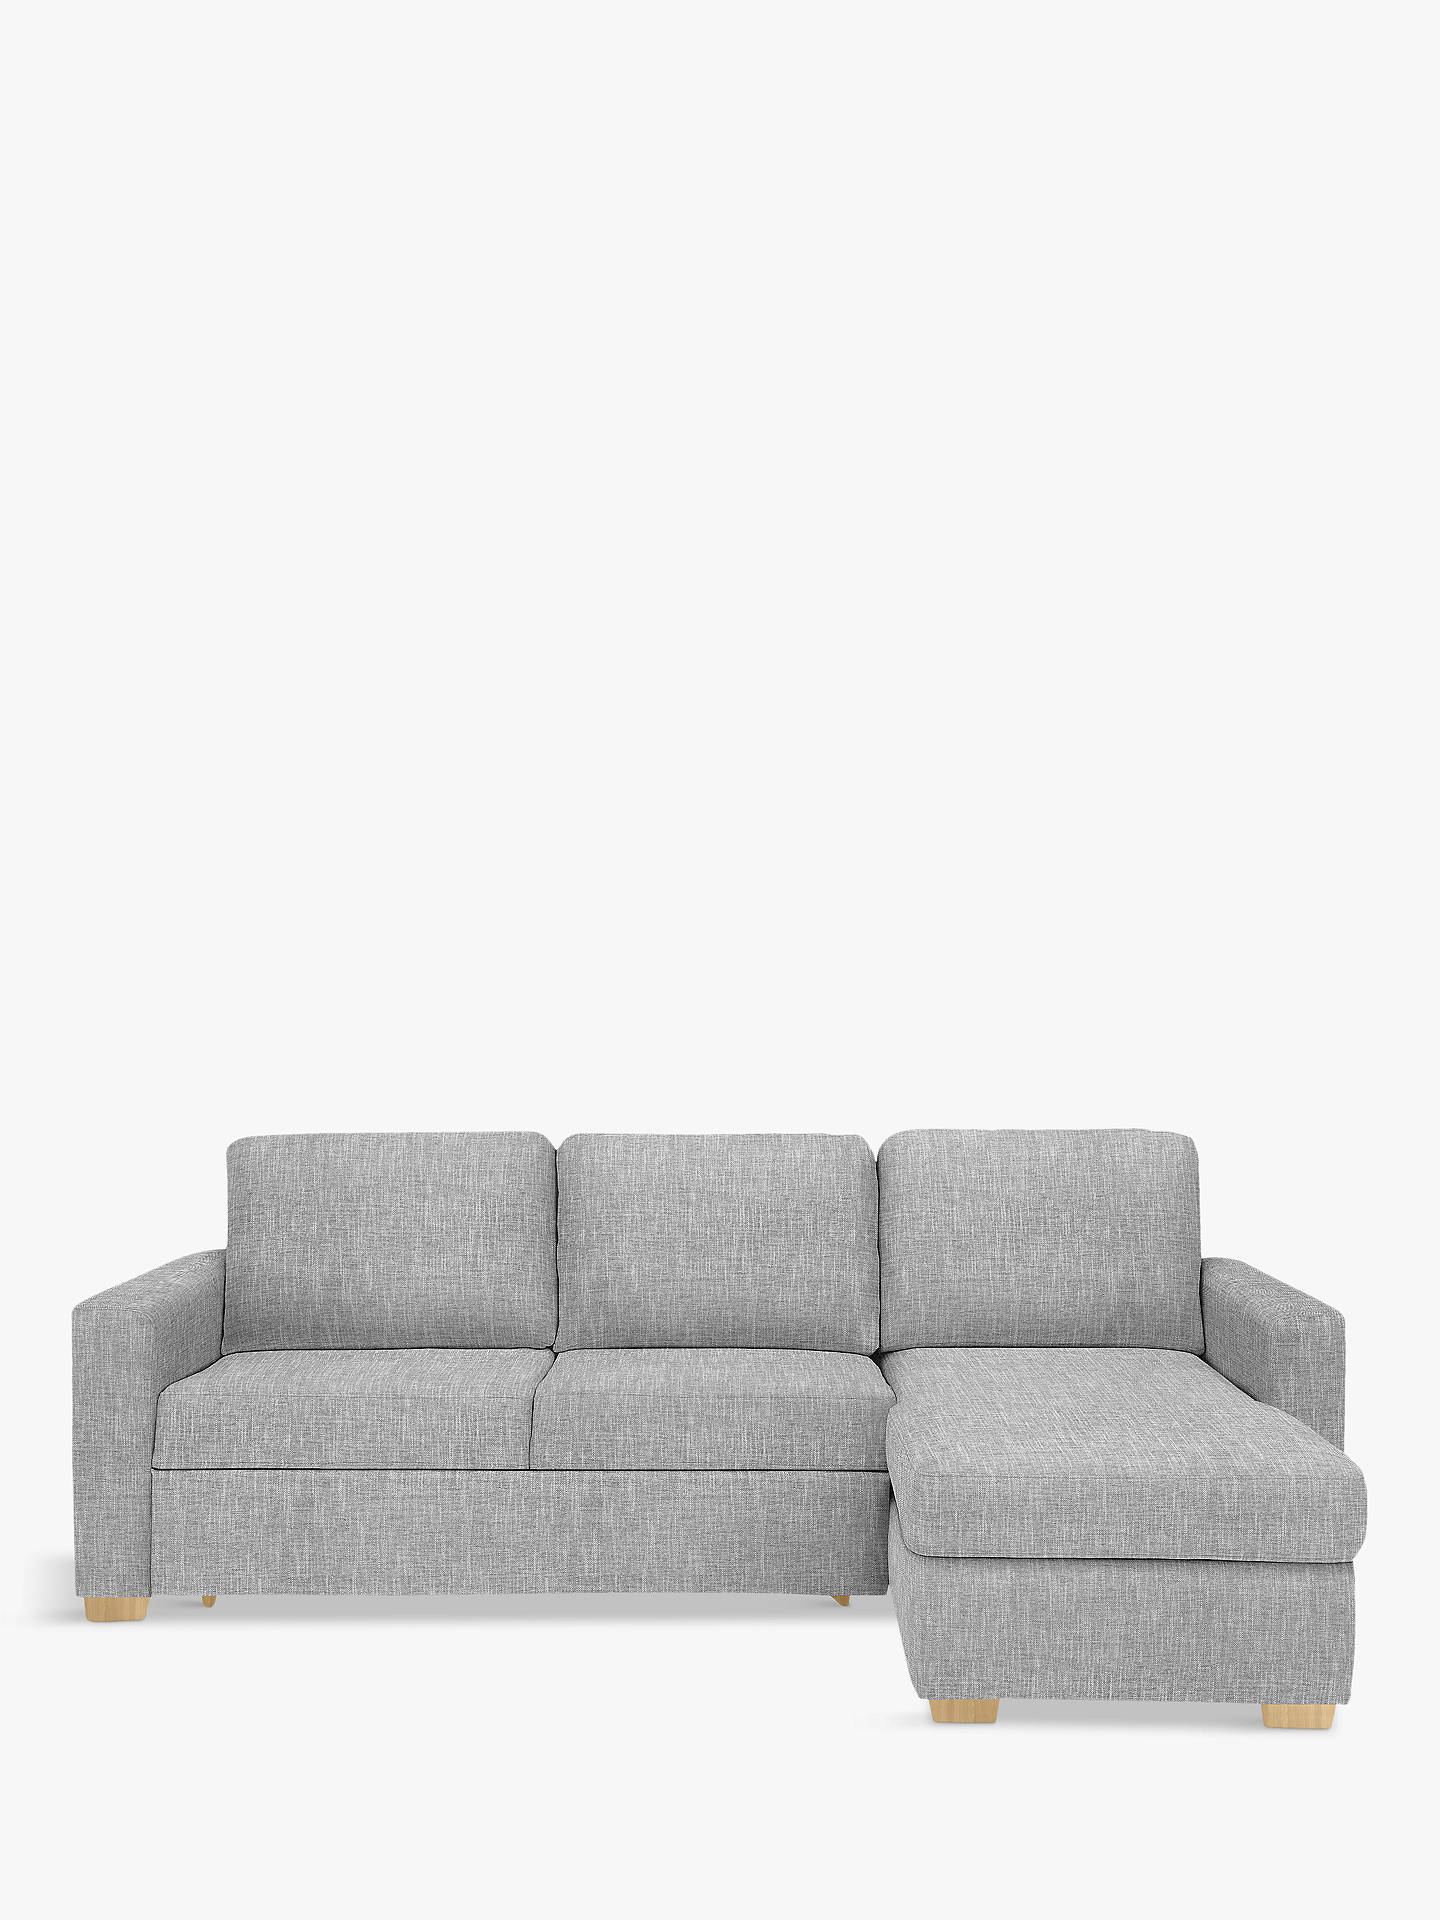 Fantastic John Lewis Partners Sacha Sofa Bed Arden Blue Grey Gmtry Best Dining Table And Chair Ideas Images Gmtryco